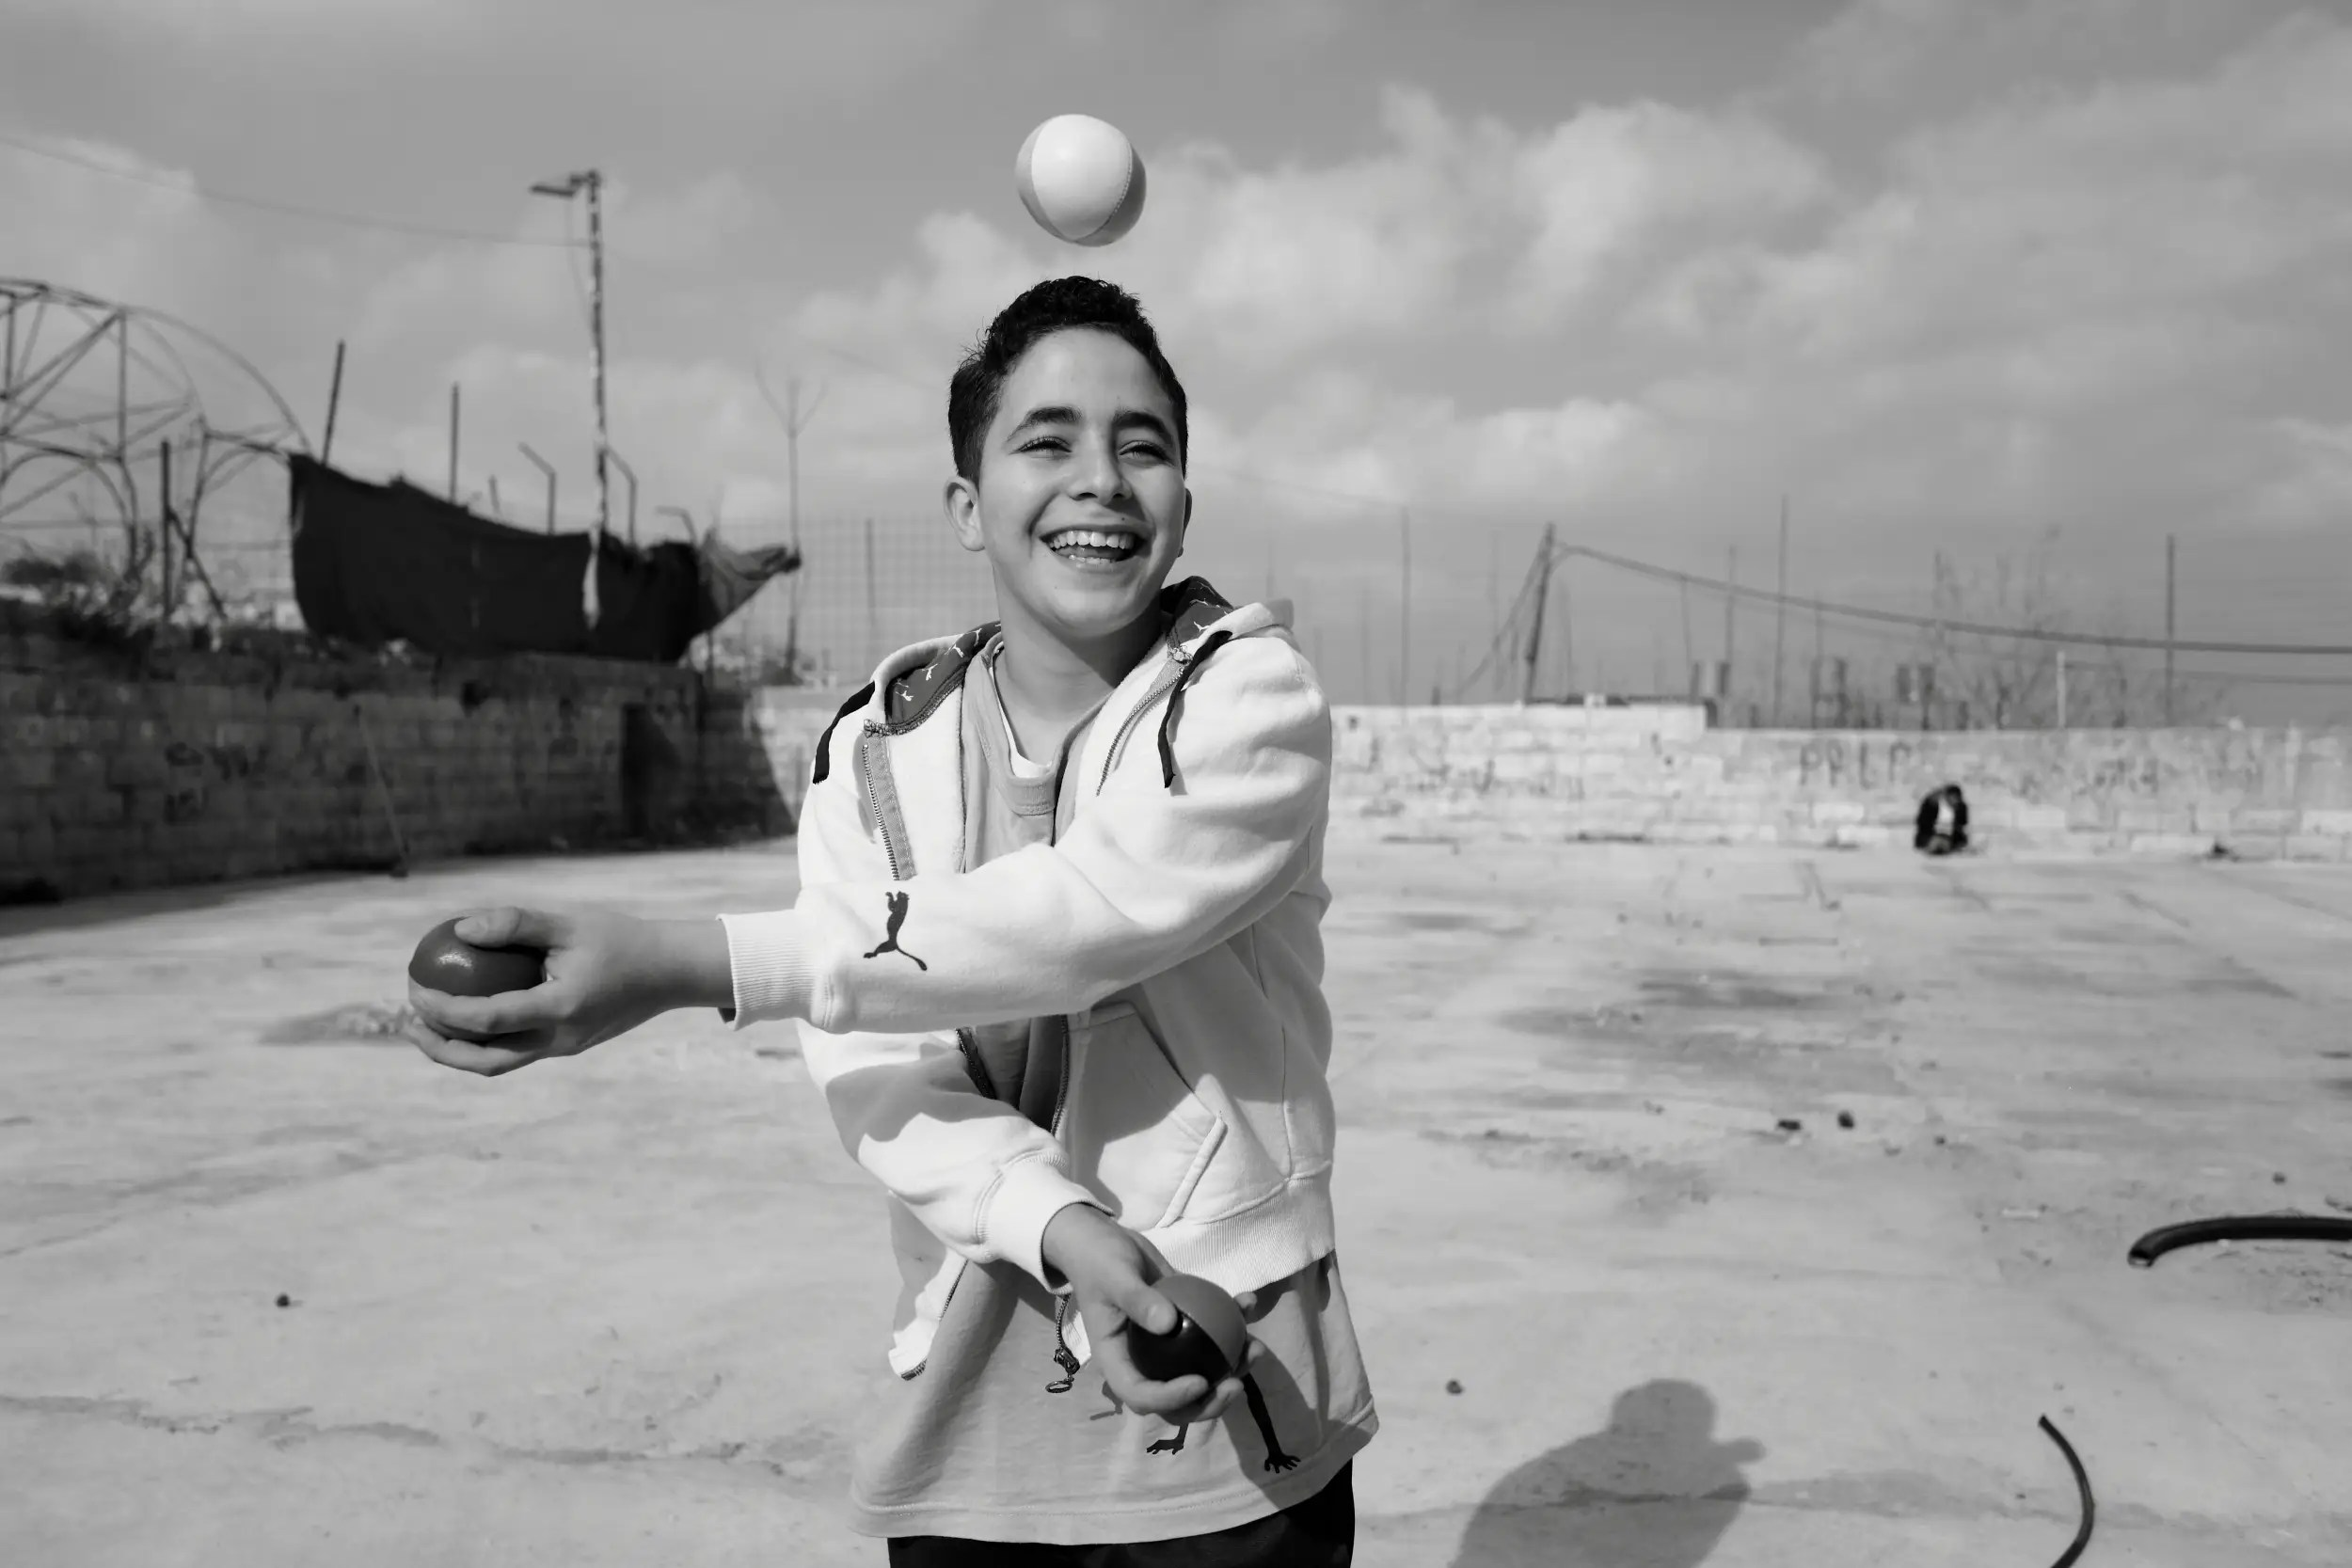 The Palestinian Circus School was established in 2009 in the village of Birzeit. Here, a Palestinian child practices at the school.